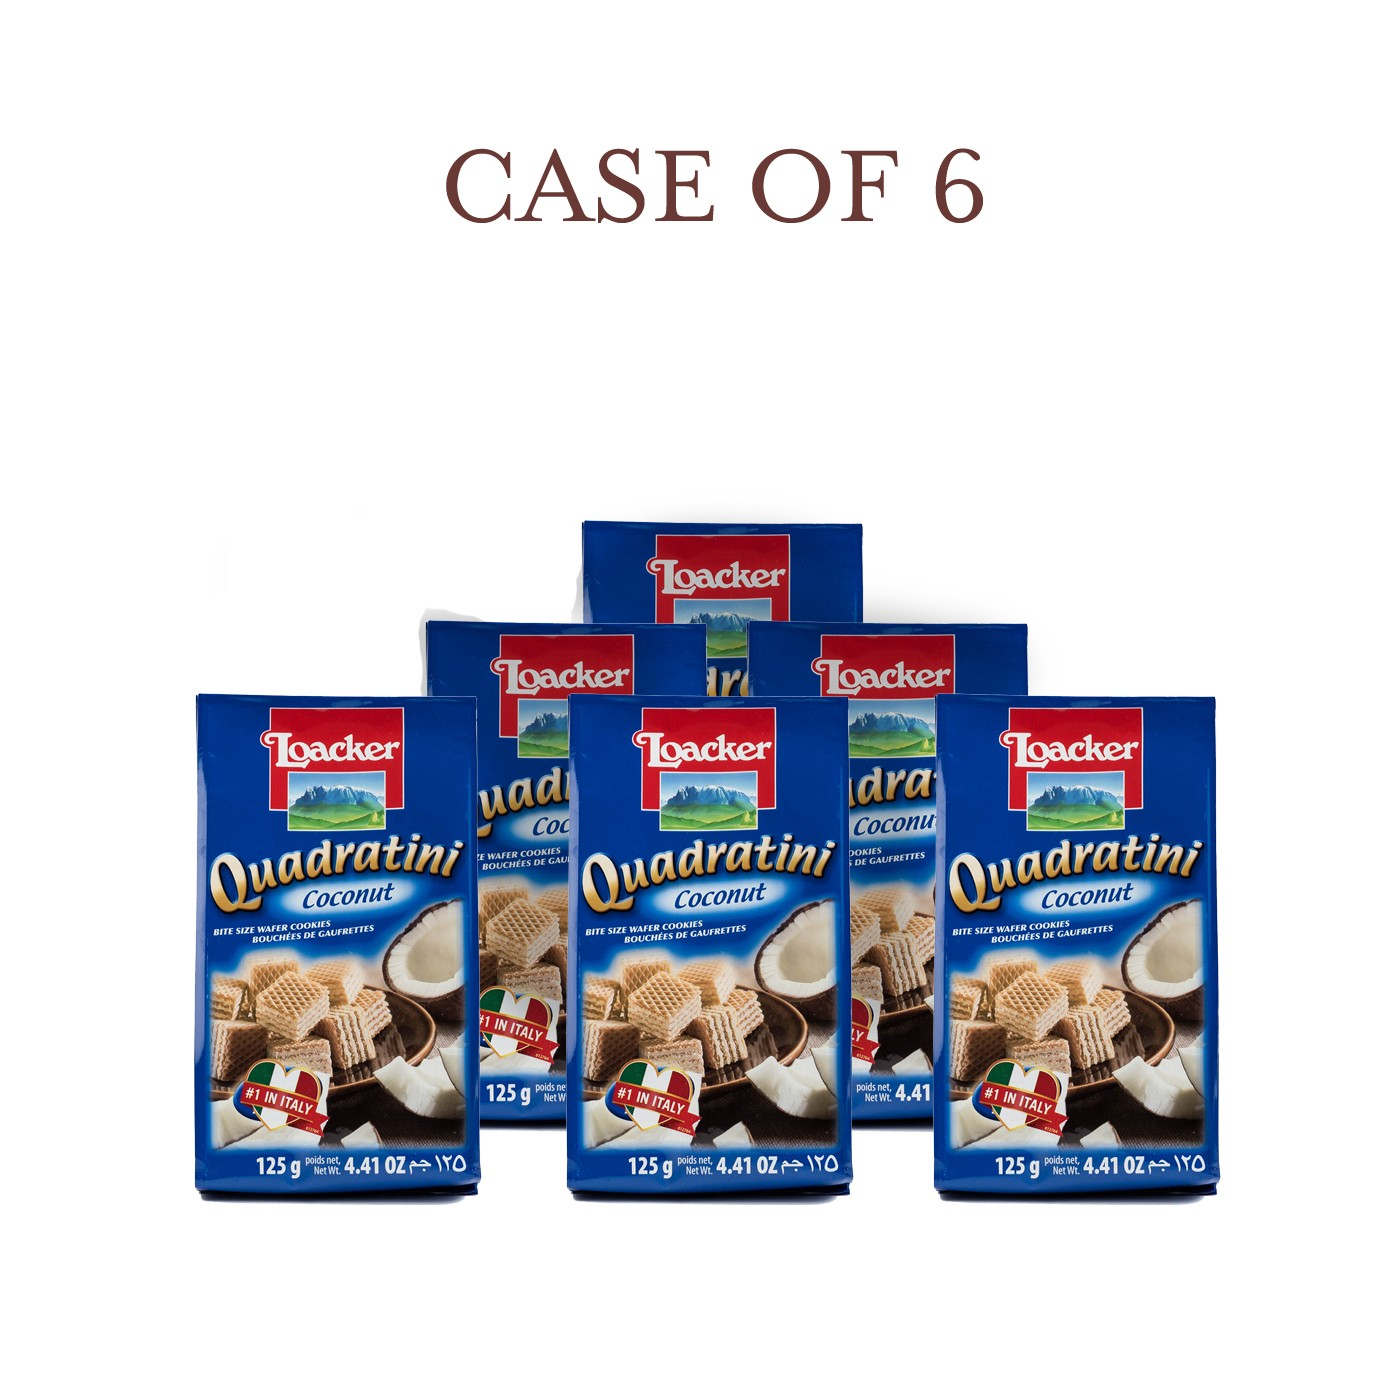 Coconut Quadratini - Case of 6